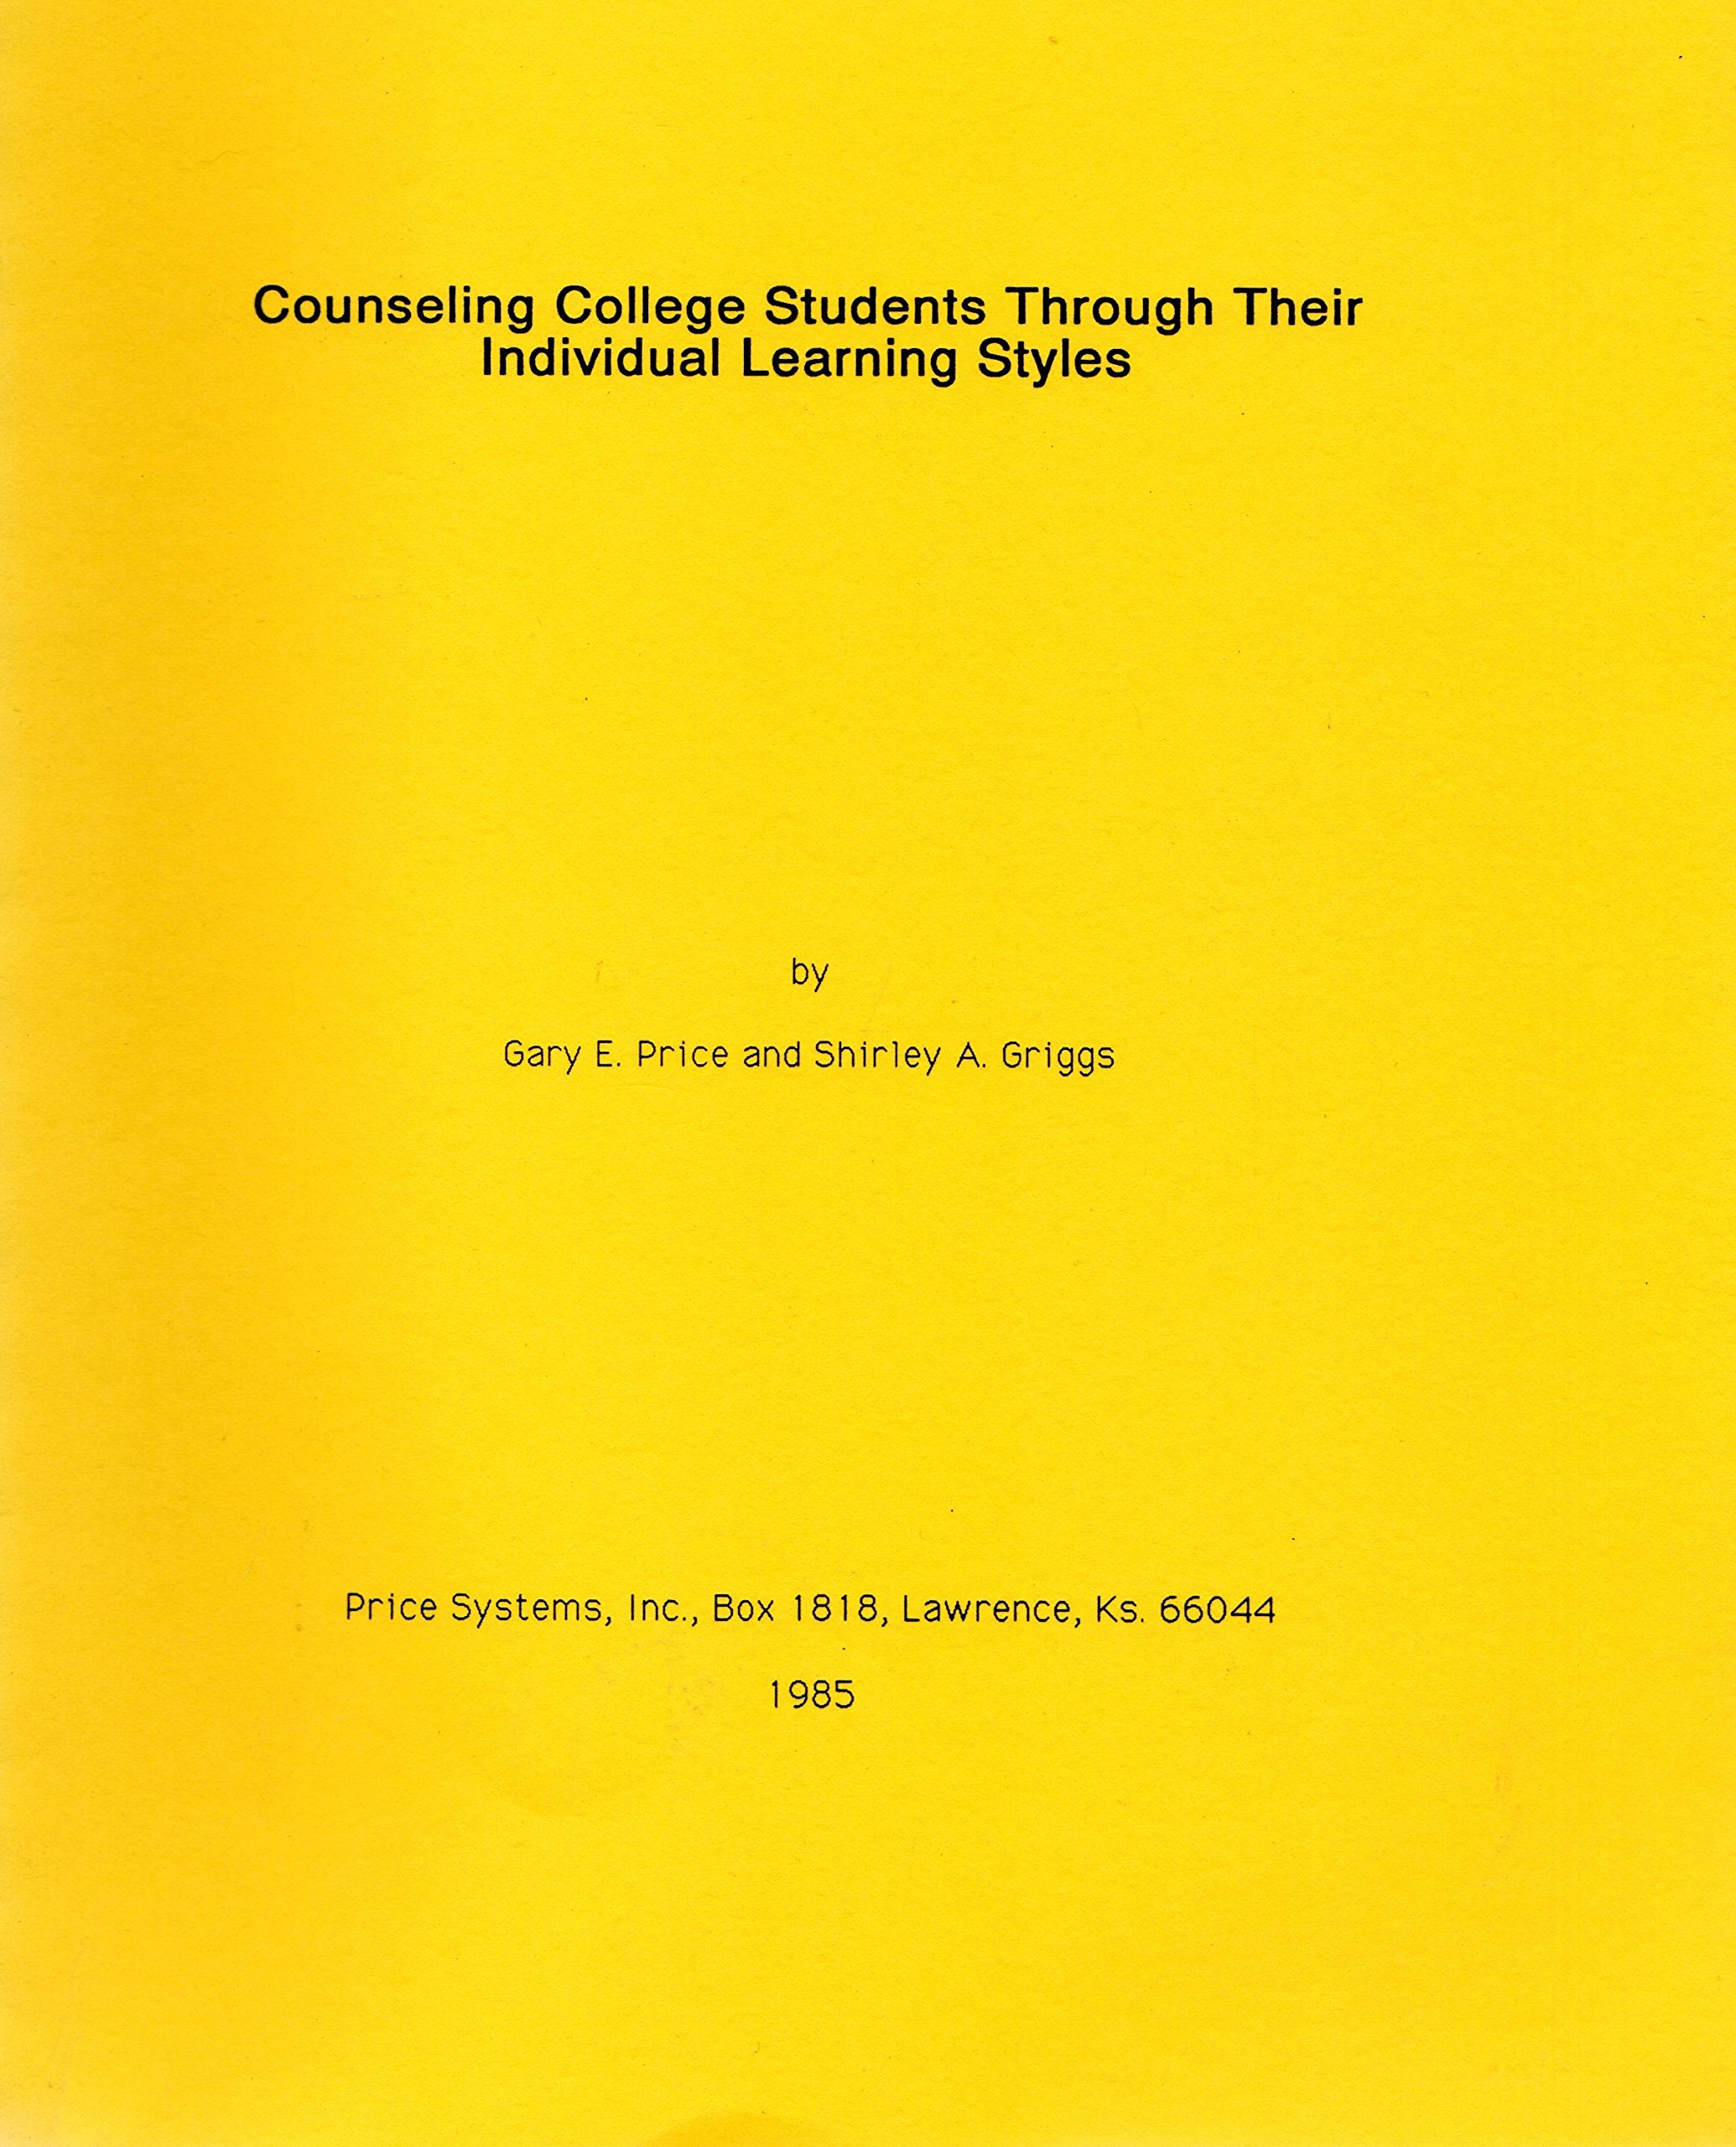 Counseling College Students Through Their Individual Learning Styles